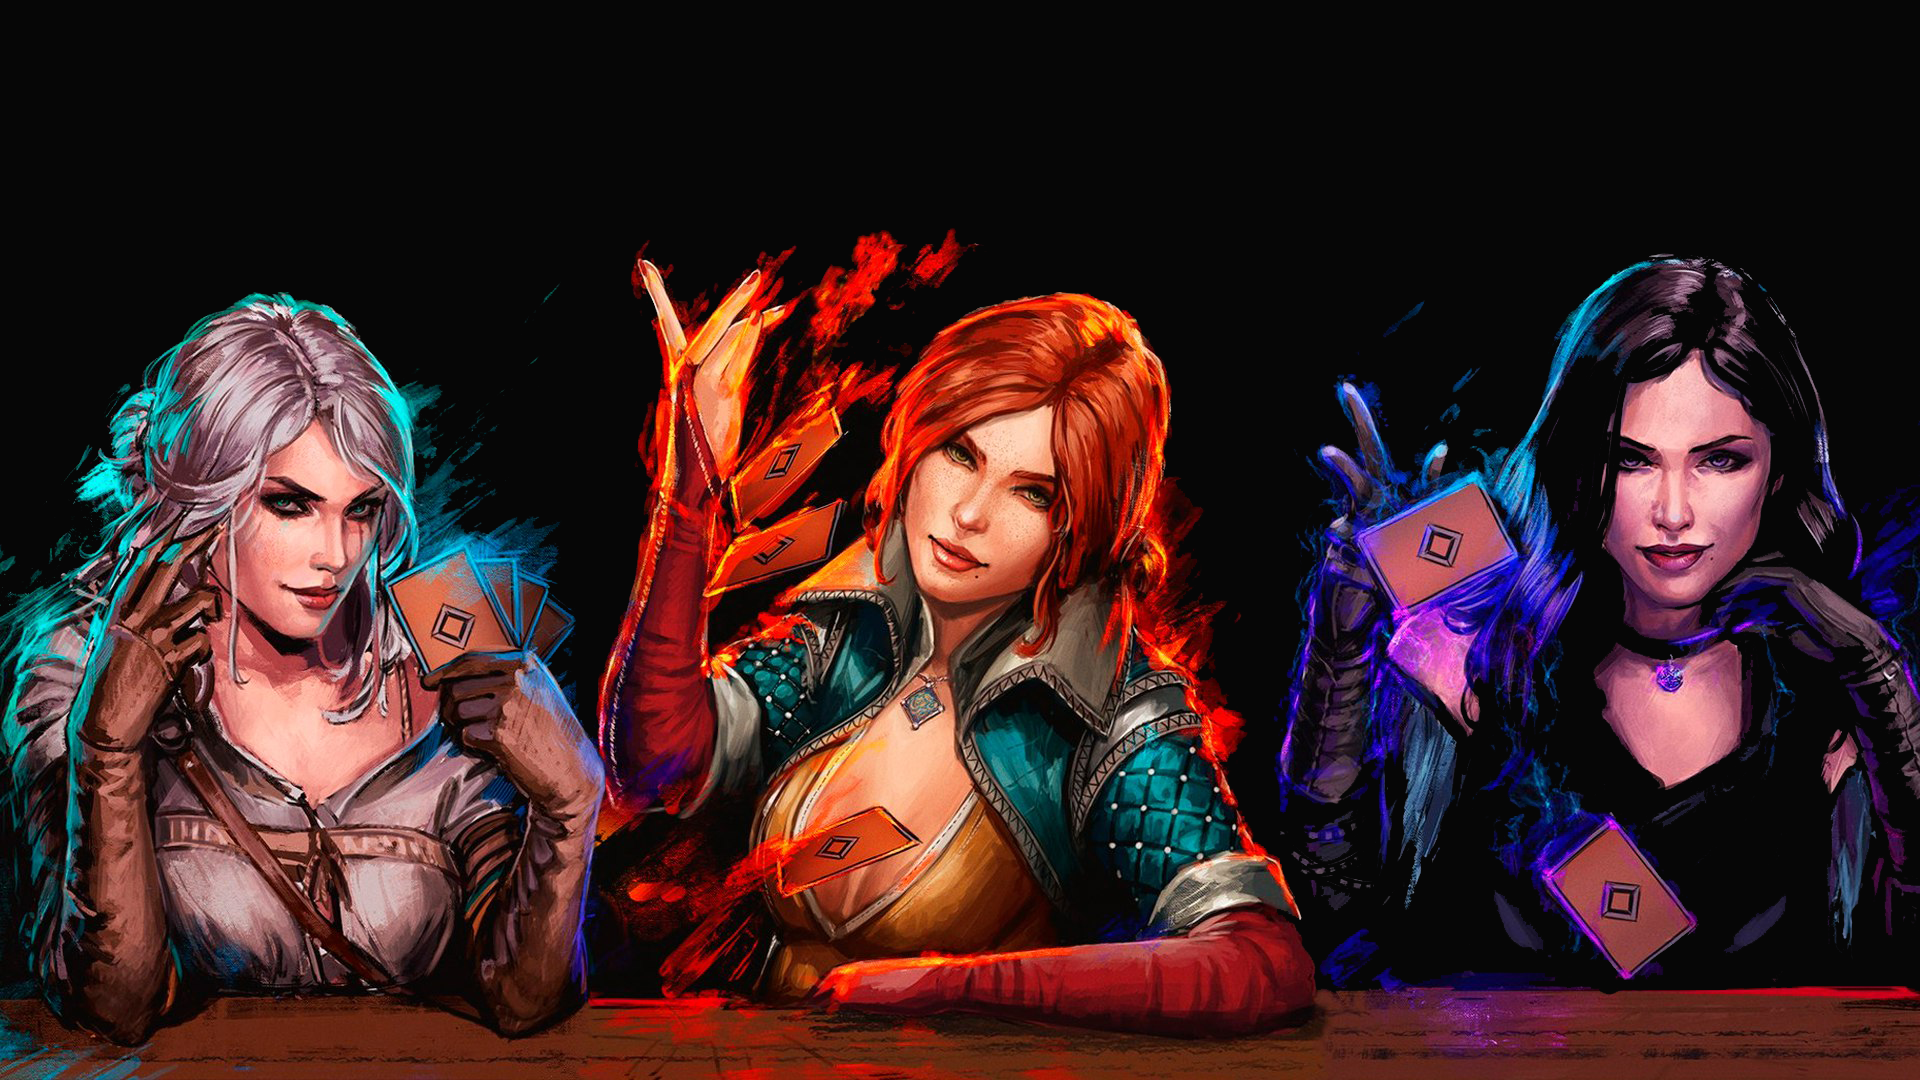 gwent__the_witcher_card_game_wallpaper_b